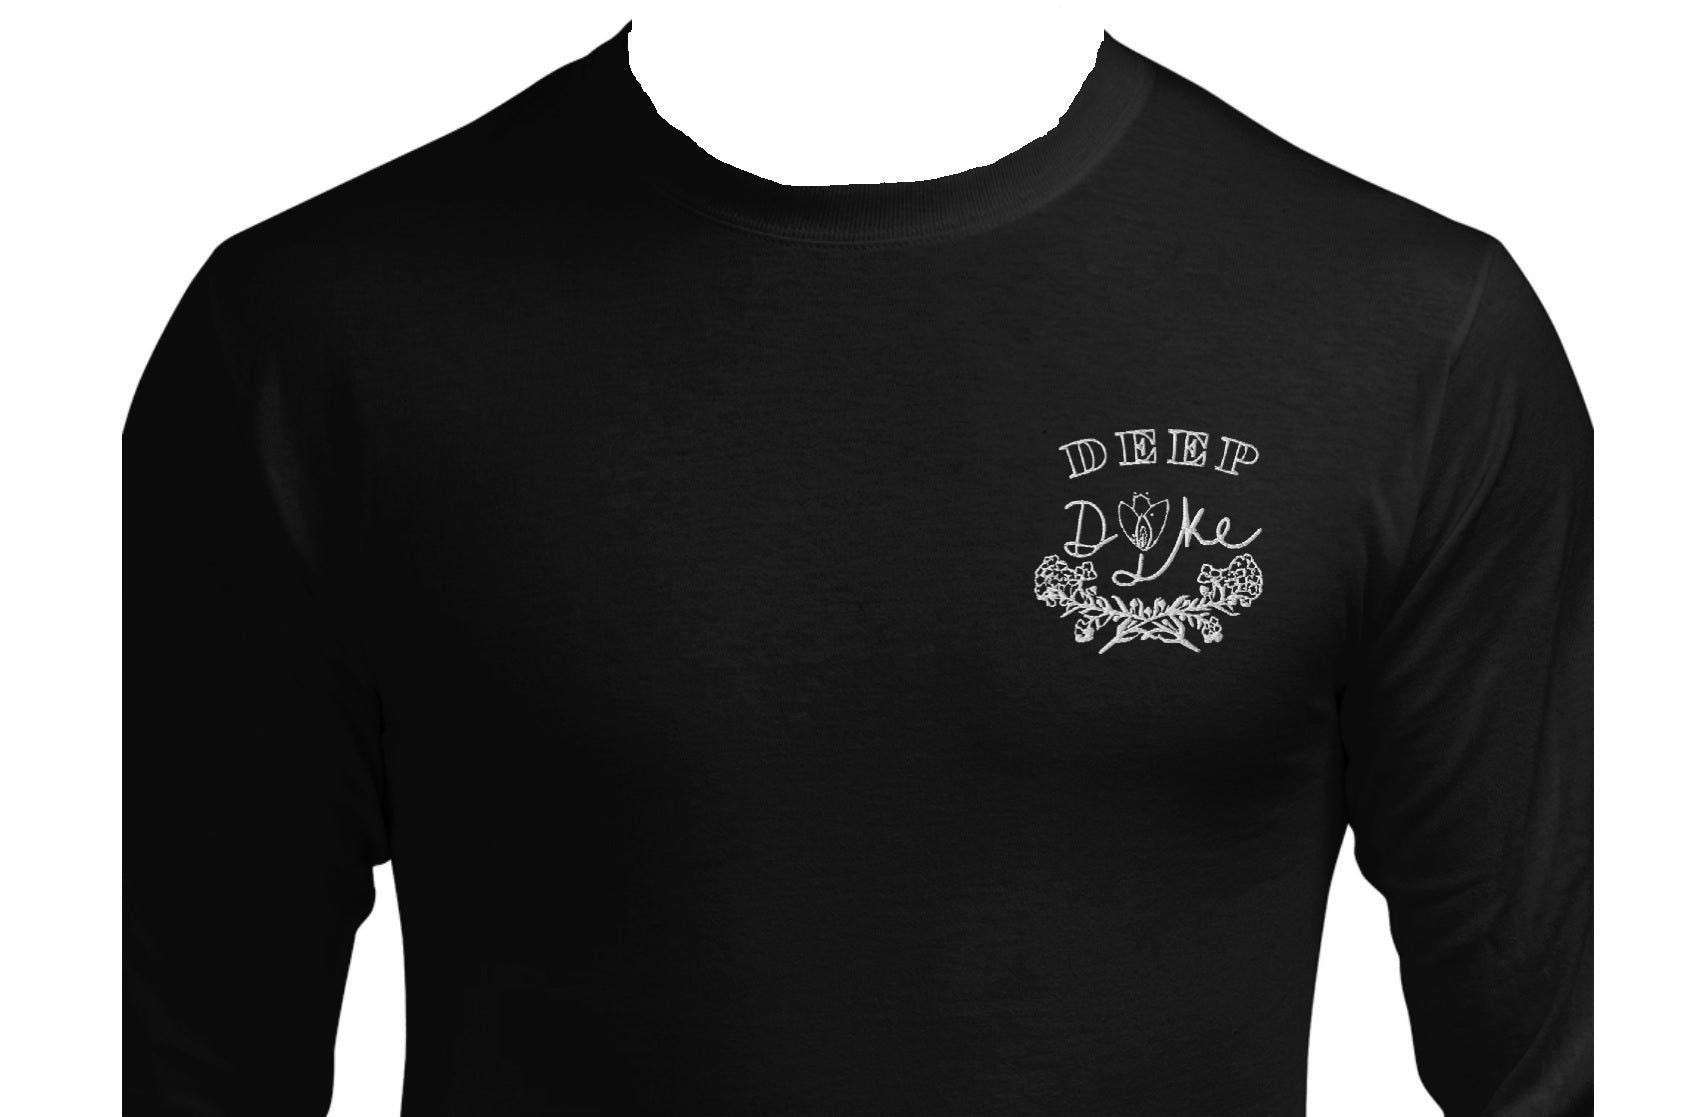 Deep Dyke long sleeved embroidered t-shirt